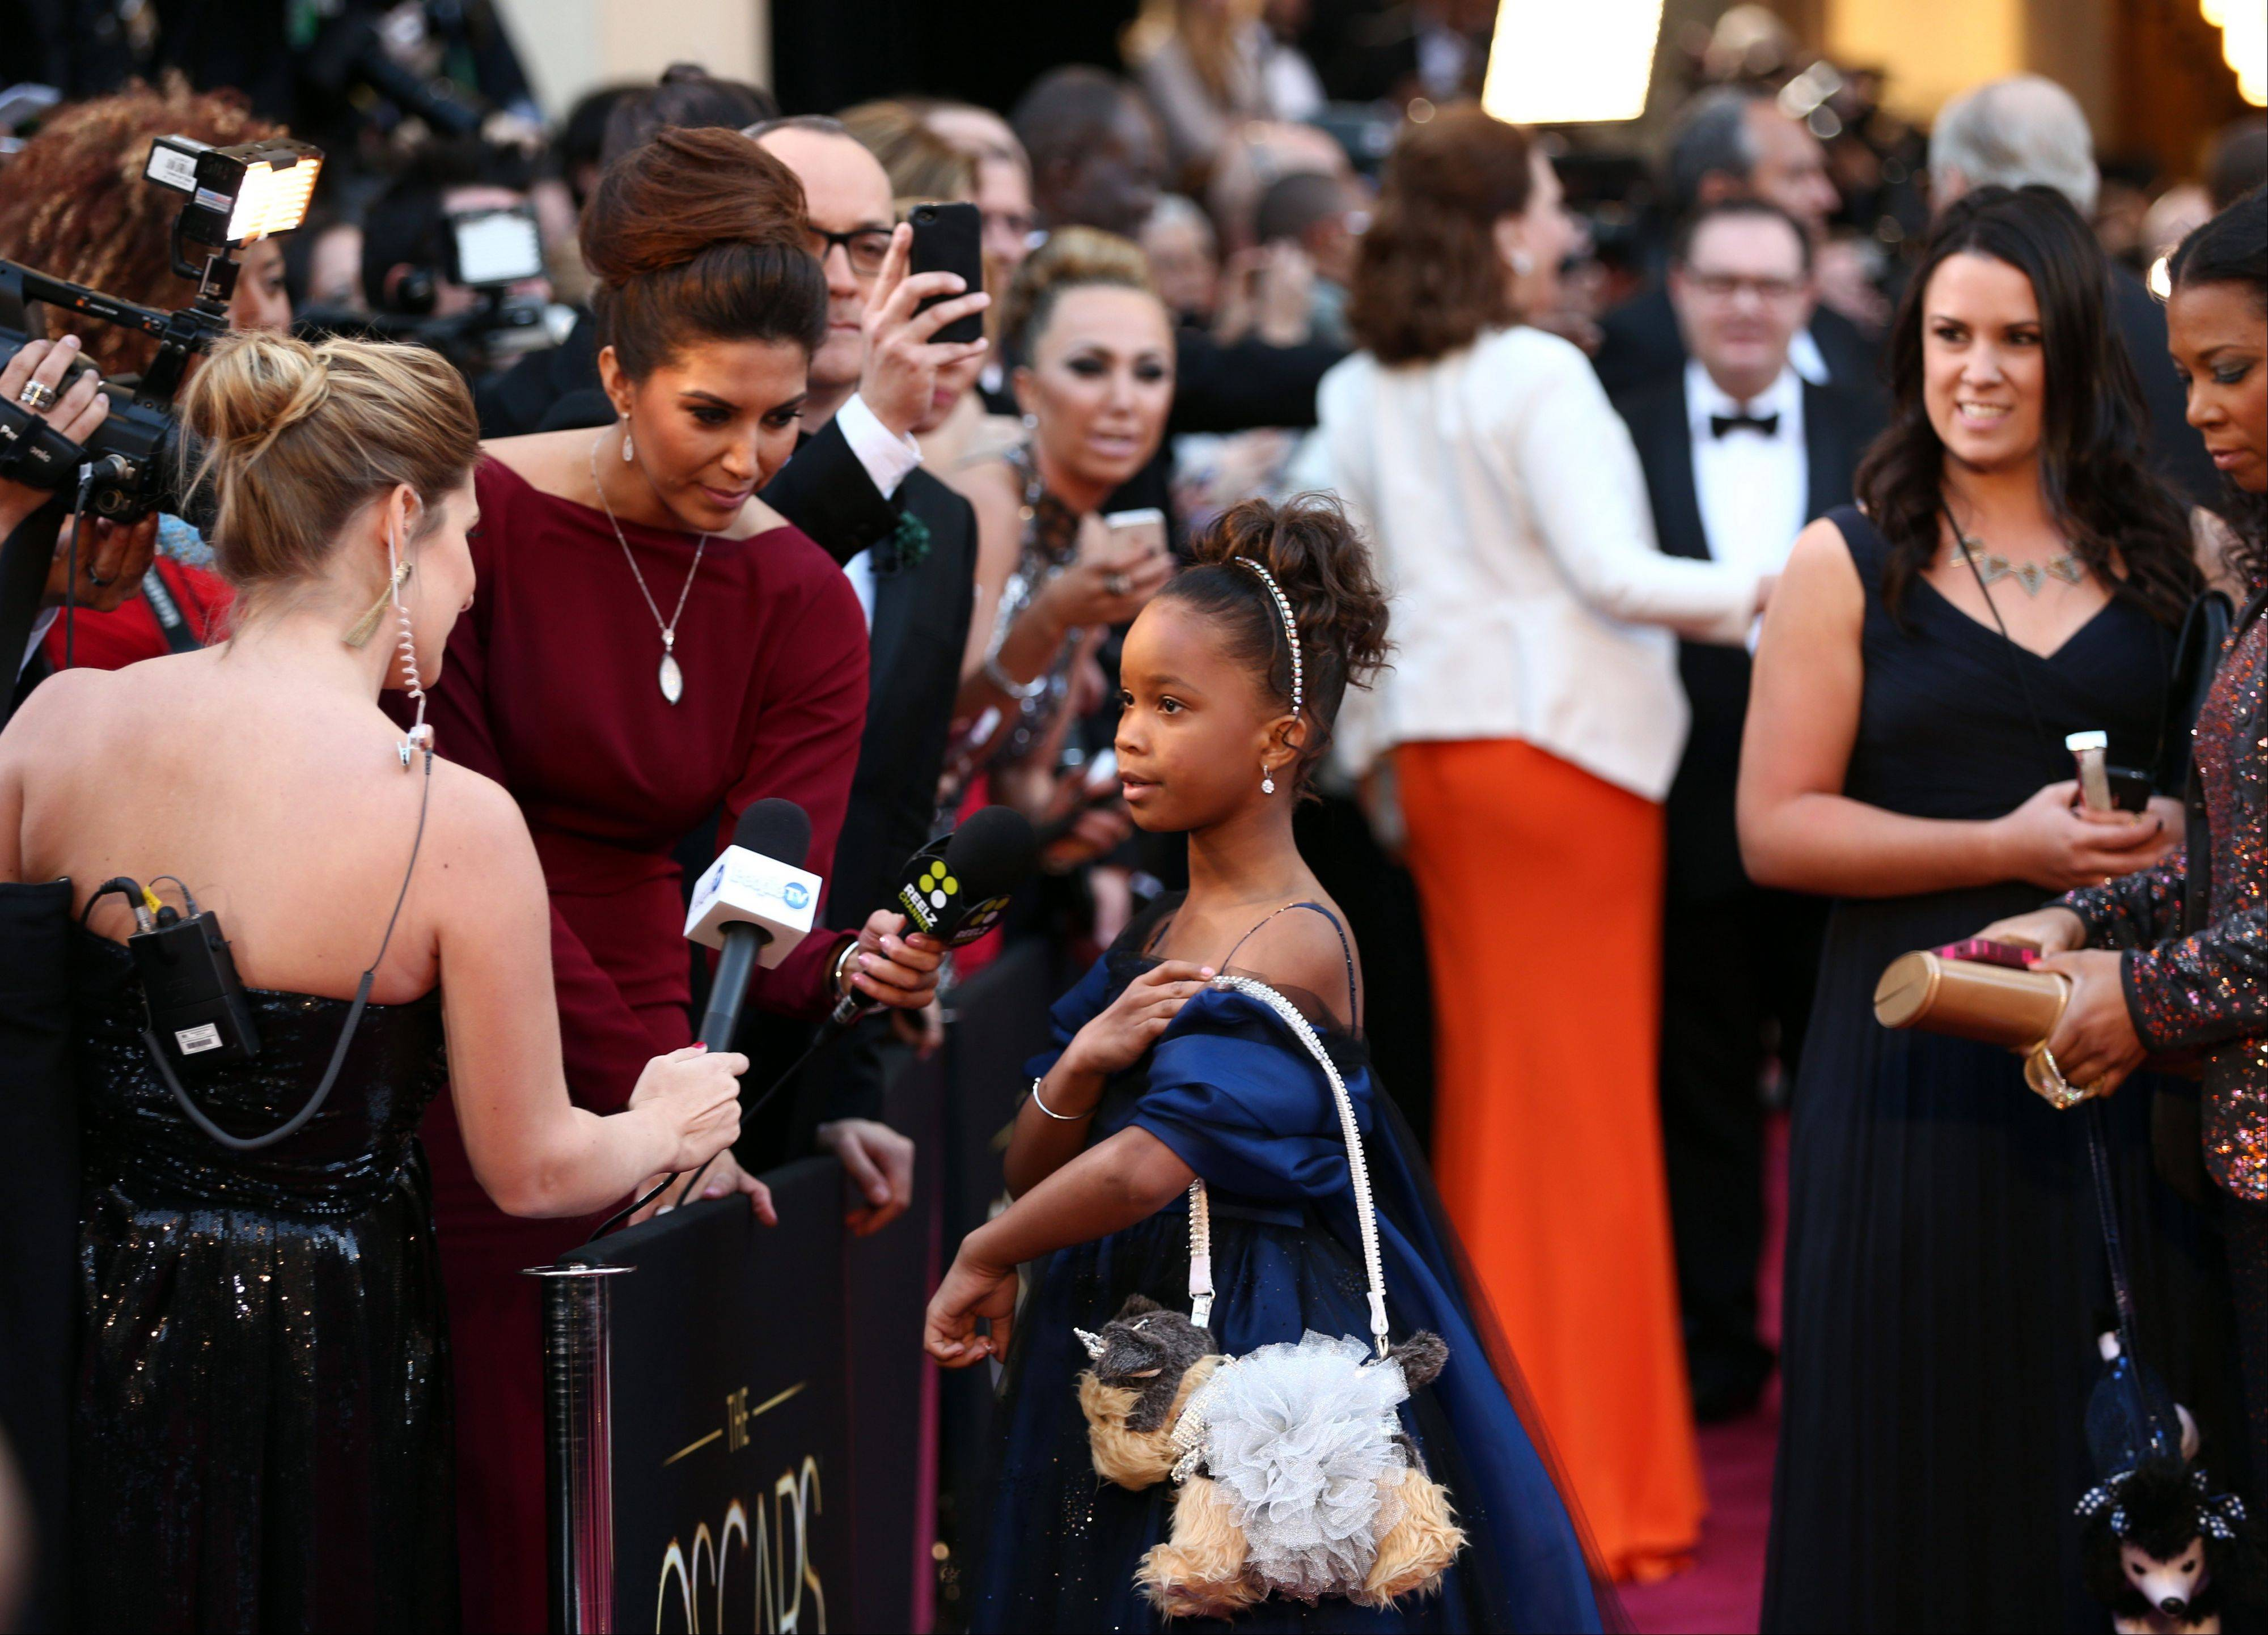 Actress Quvenzhane Wallis arrives at the Oscars at the Dolby Theatre on Sunday. The Onion is apologizing for calling the 9-year-old star of �Beasts of the Southern Wild� a vulgar and offensive name on Twitter, an attack that led to a firestorm online.